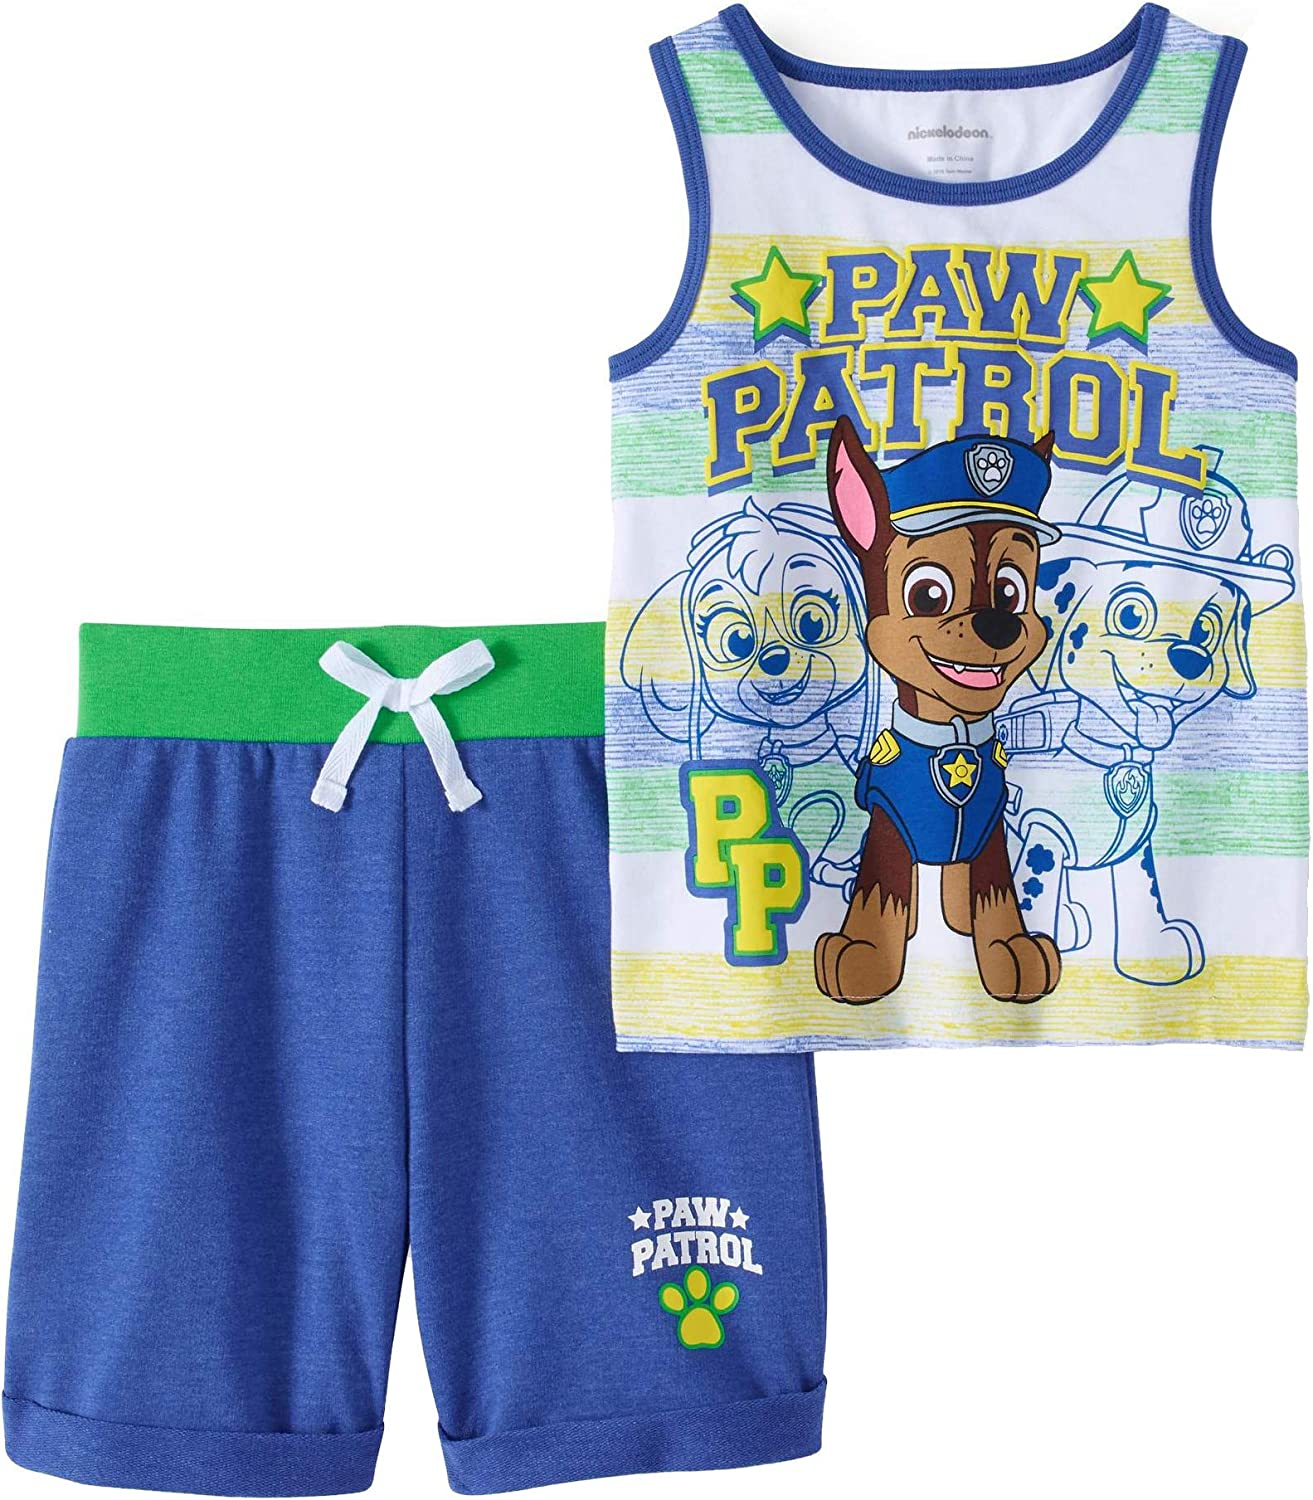 Nickelodeon Paw Patrol Girls Infant and Toddler Shorts Clothing Sets